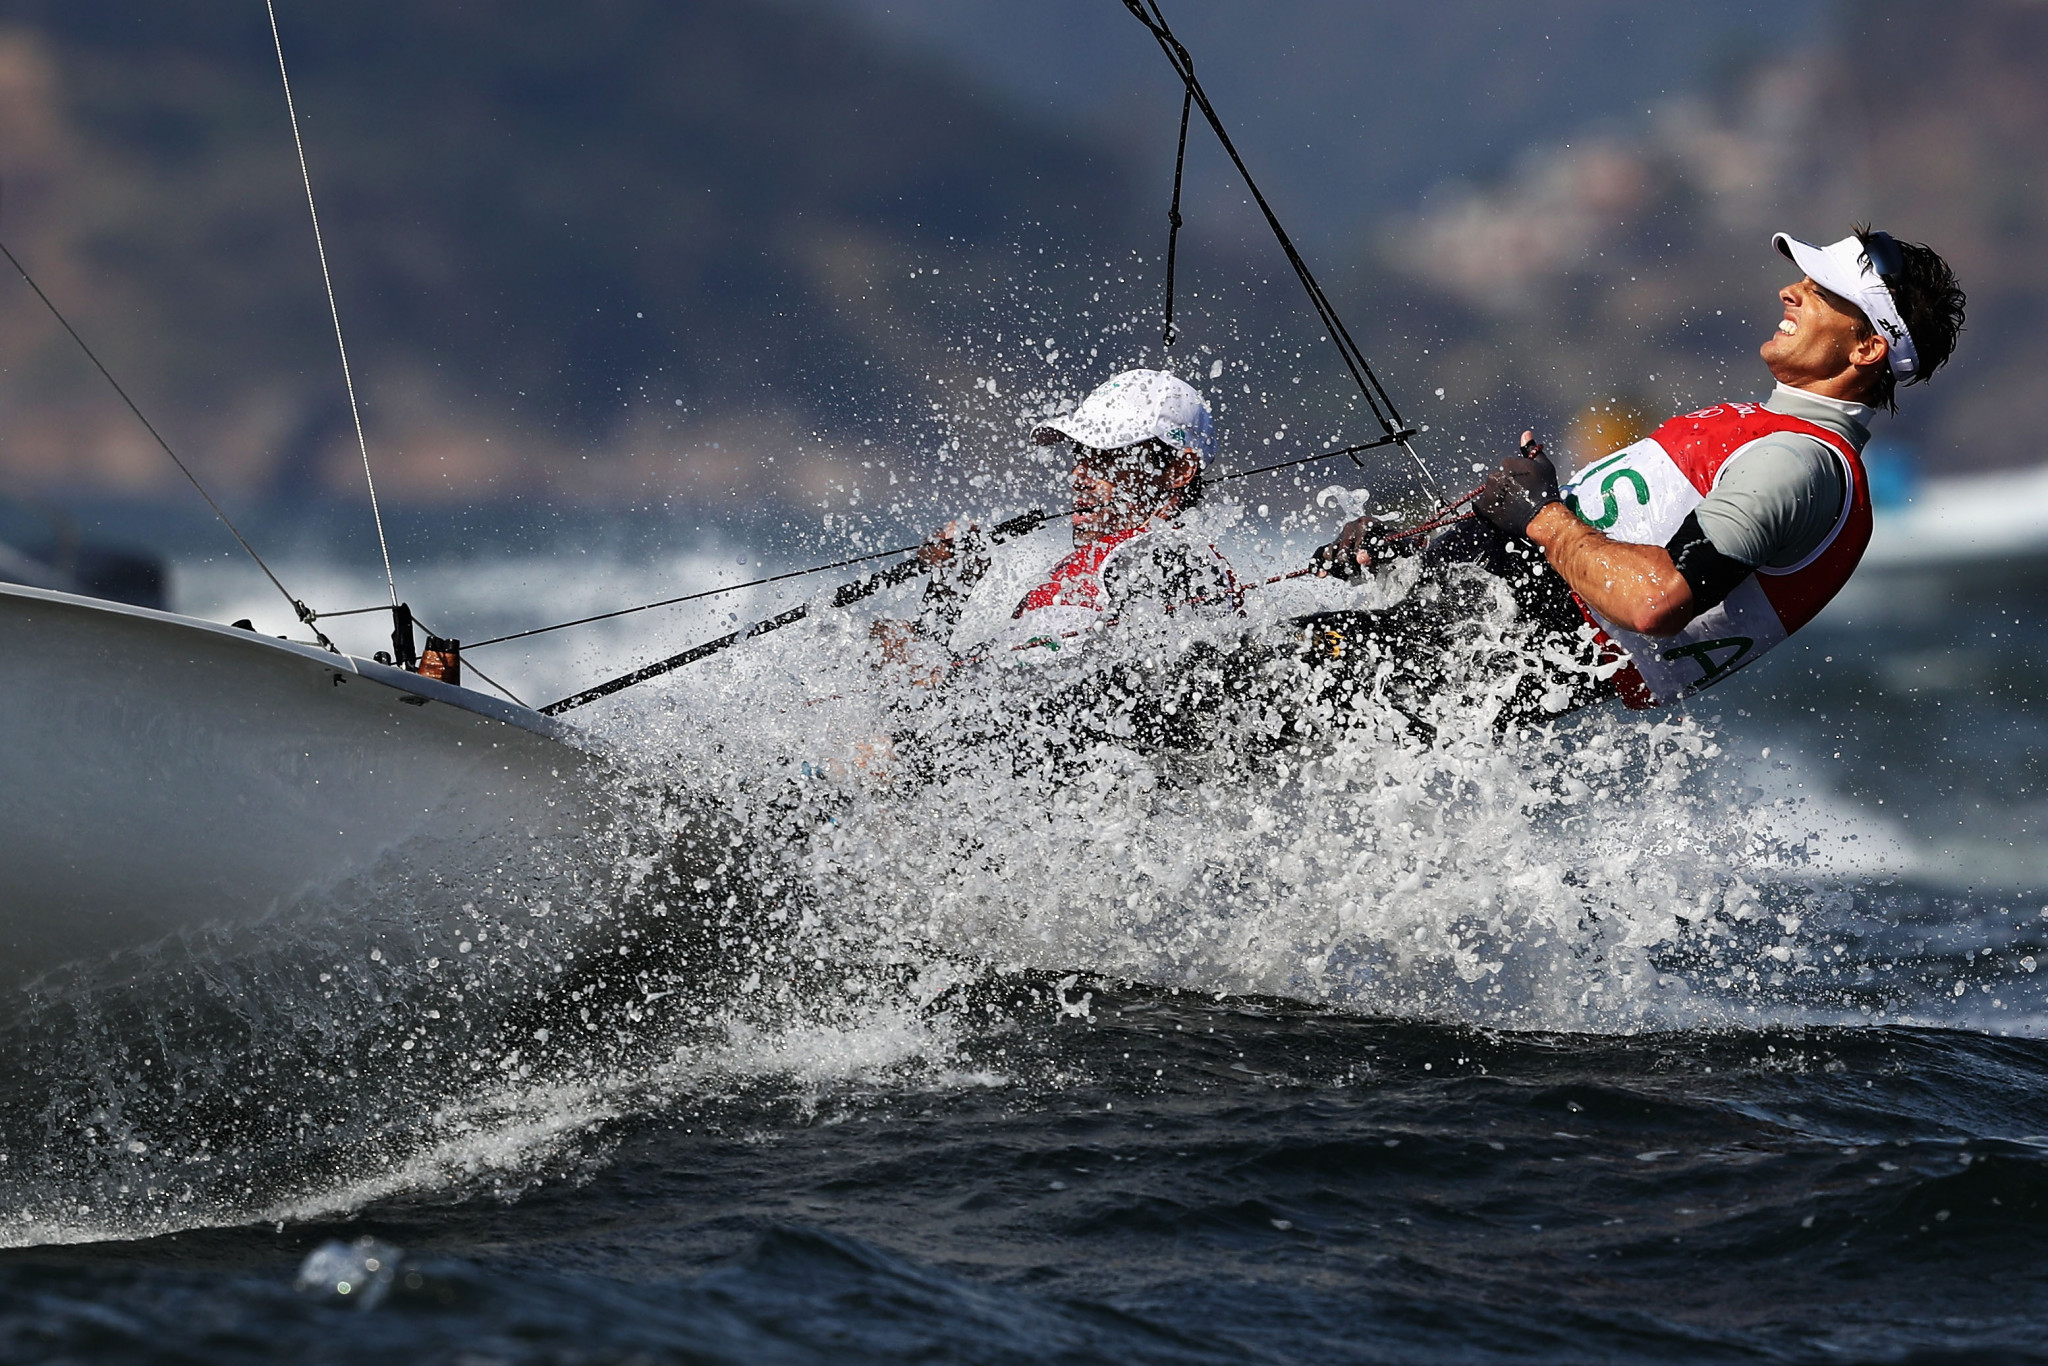 Australian pairing Mathew Belcher and Will Ryan took the lead in the men's event as the 470 World Championships continued today on Enoshima Bay in Japan ©Getty Images